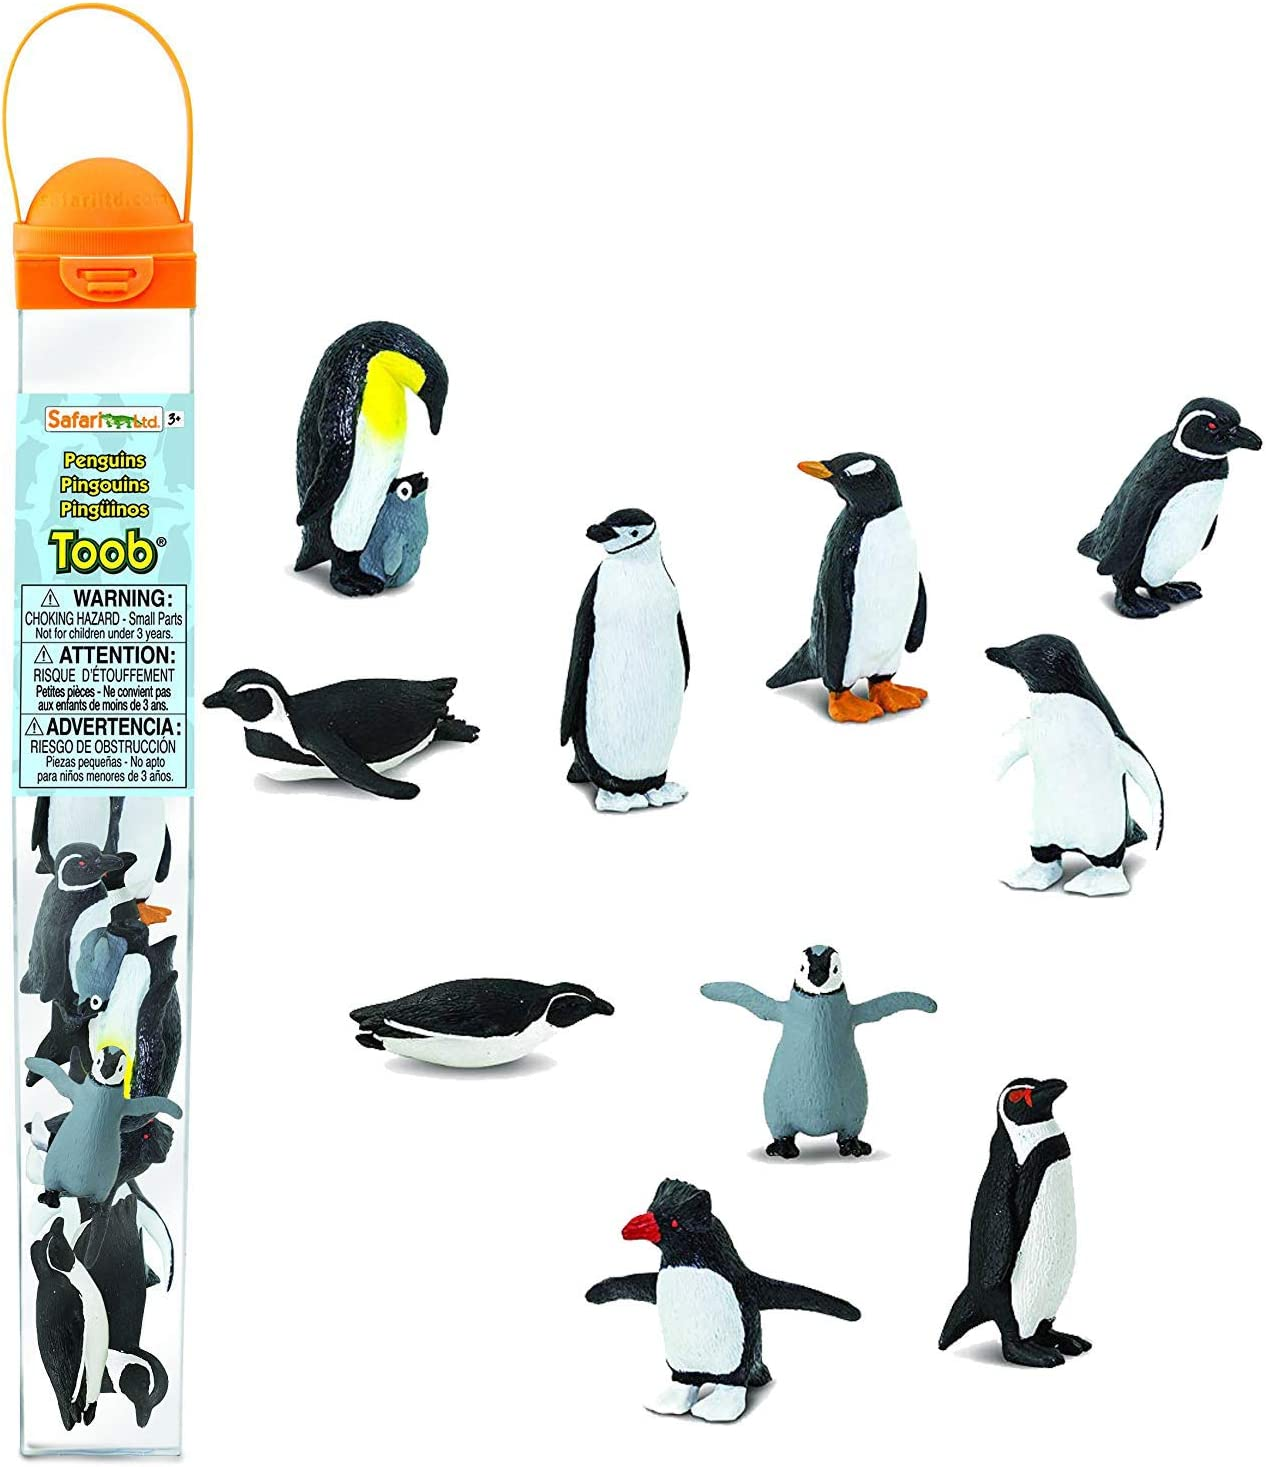 Safari Ltd Penguin TOOB With 10 Fun and Flightless Figurines, Including Gentoo, Humboldt, Chinstrap, Rockhopper, Galapagos, Adelie, Swimming, Sliding, Baby, And Penguin With Baby Ages 3 And Up